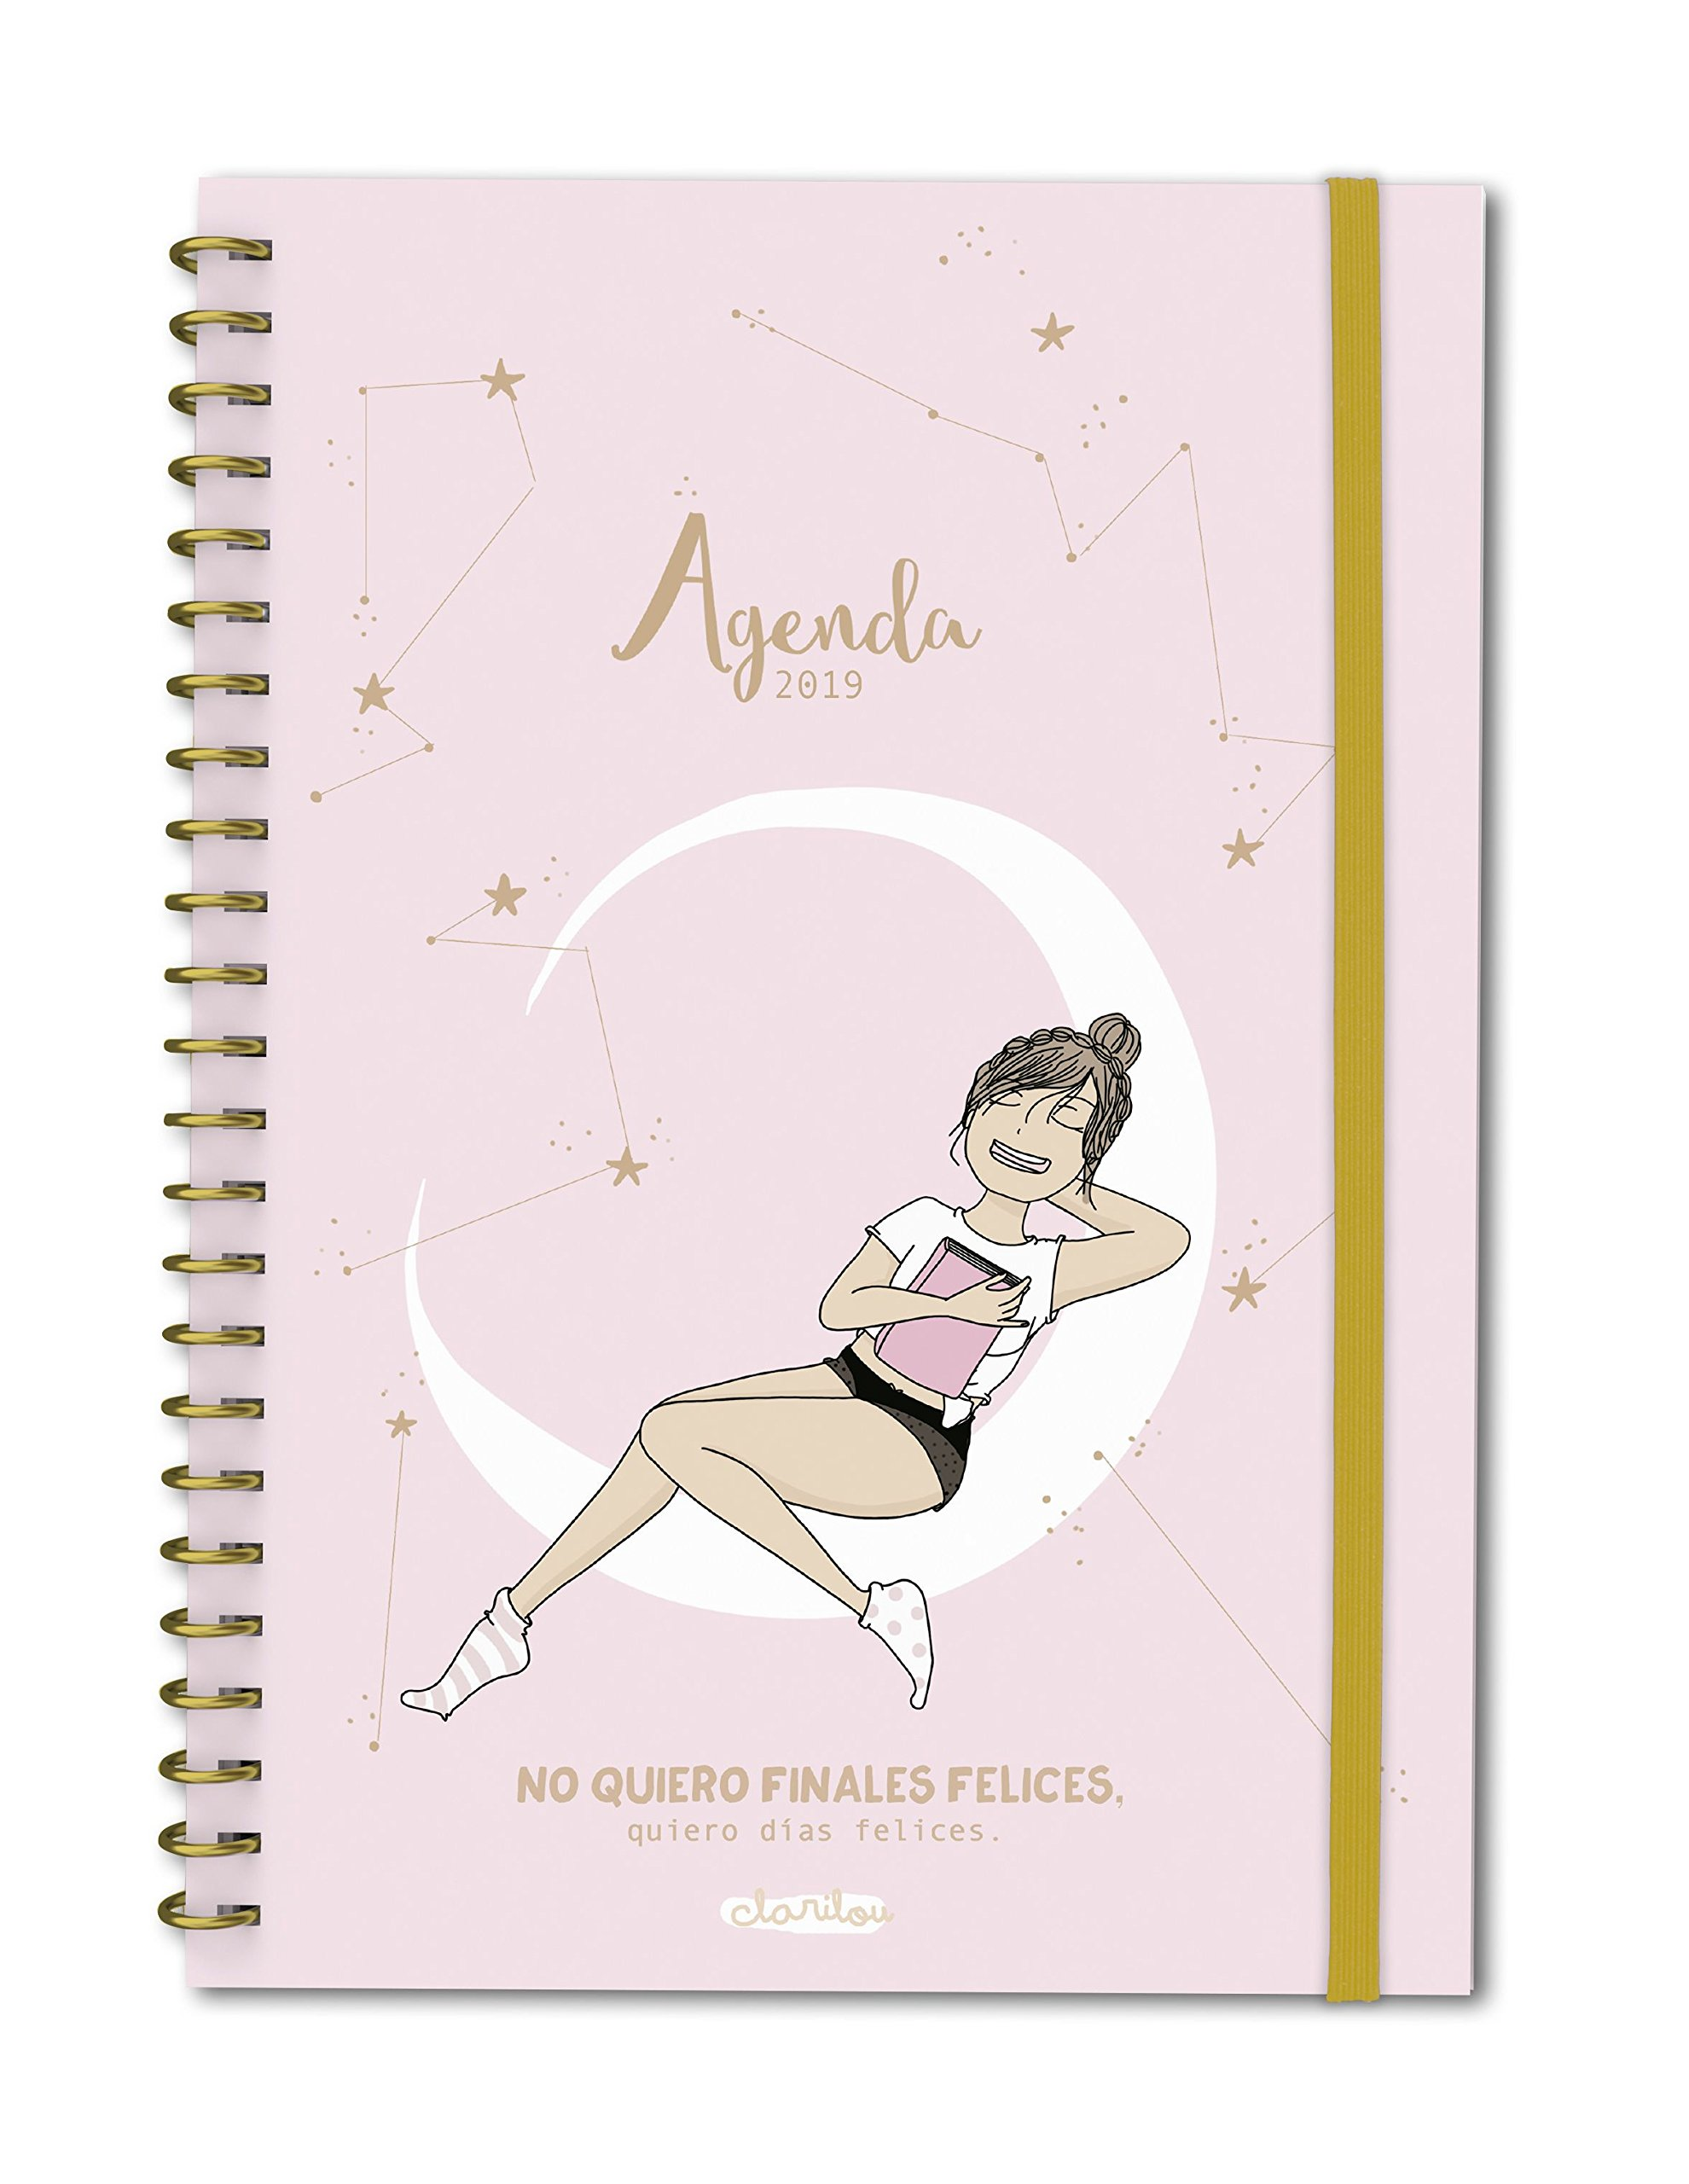 Agenda anual semana/vista Clarilou 2019 (TANTANFAN) Tapa dura – 13 sep 2018 Planeta Gifts 841716619X Stationery items Yearbooks